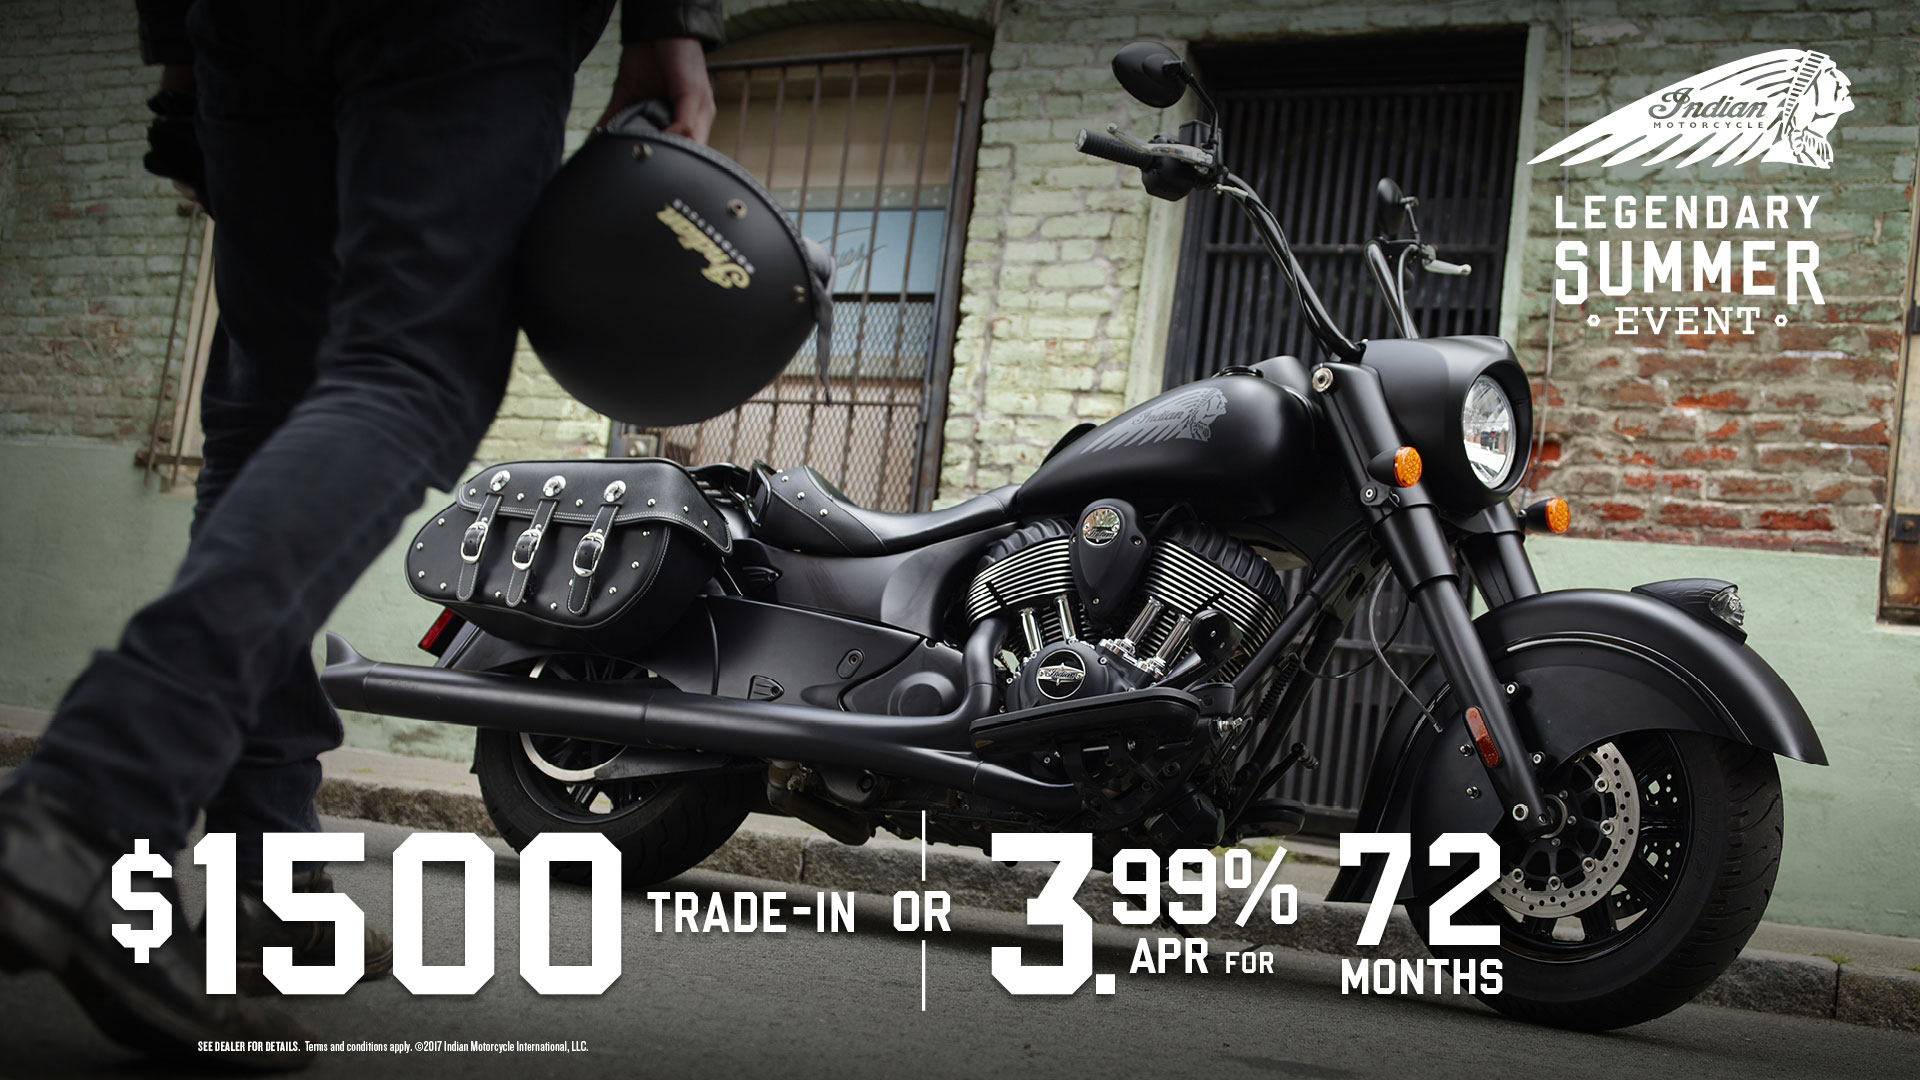 $1,500 Trade-In Allowance or 3.99% for 72 months on the purchase of any new 2017 Heavyweight Indian Motorcycle through October 31, 2017